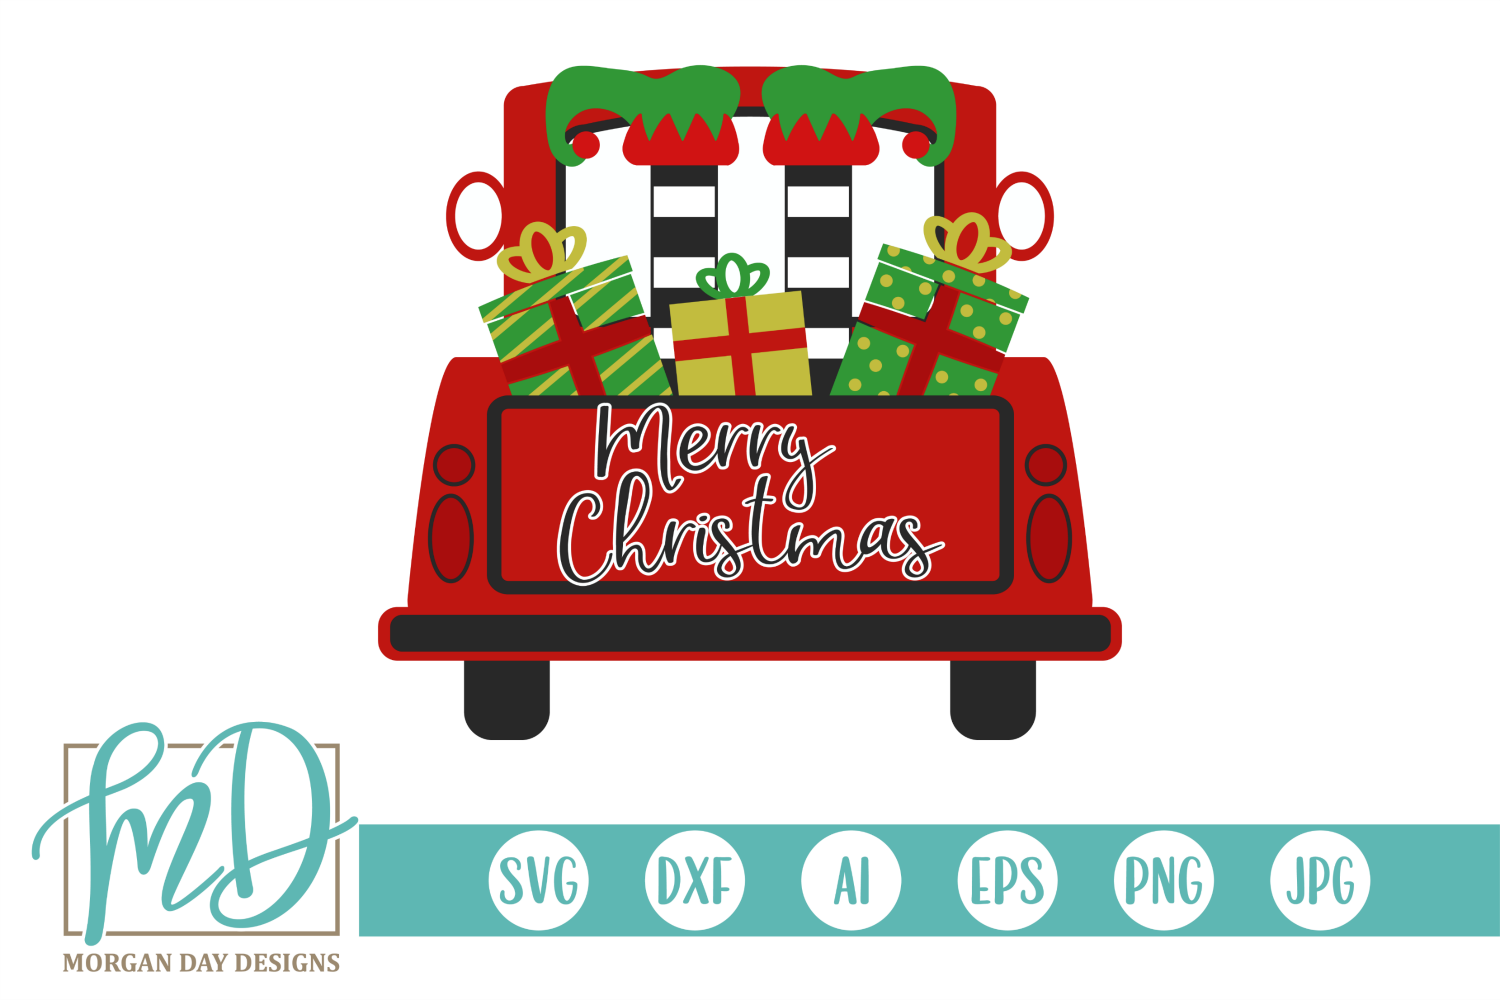 Download Free Merry Christmas Truck With Elf Graphic By Morgan Day Designs for Cricut Explore, Silhouette and other cutting machines.